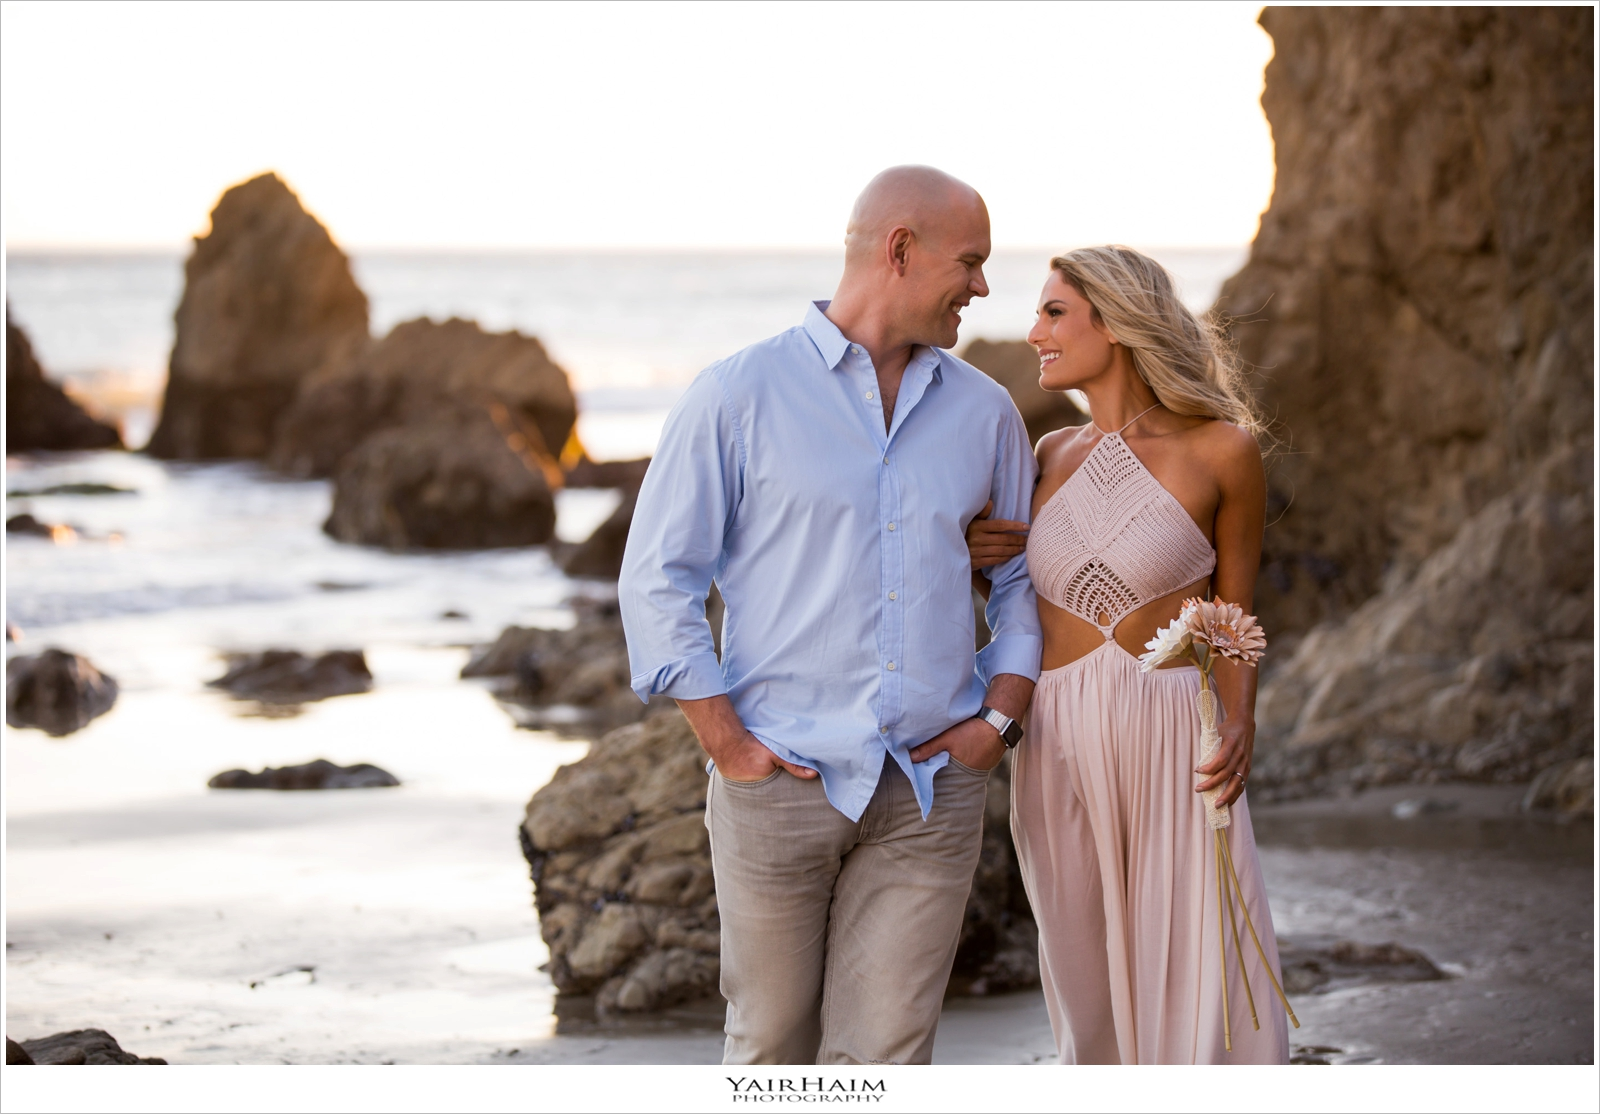 El-Matador-Malibu-engagement-photos-7